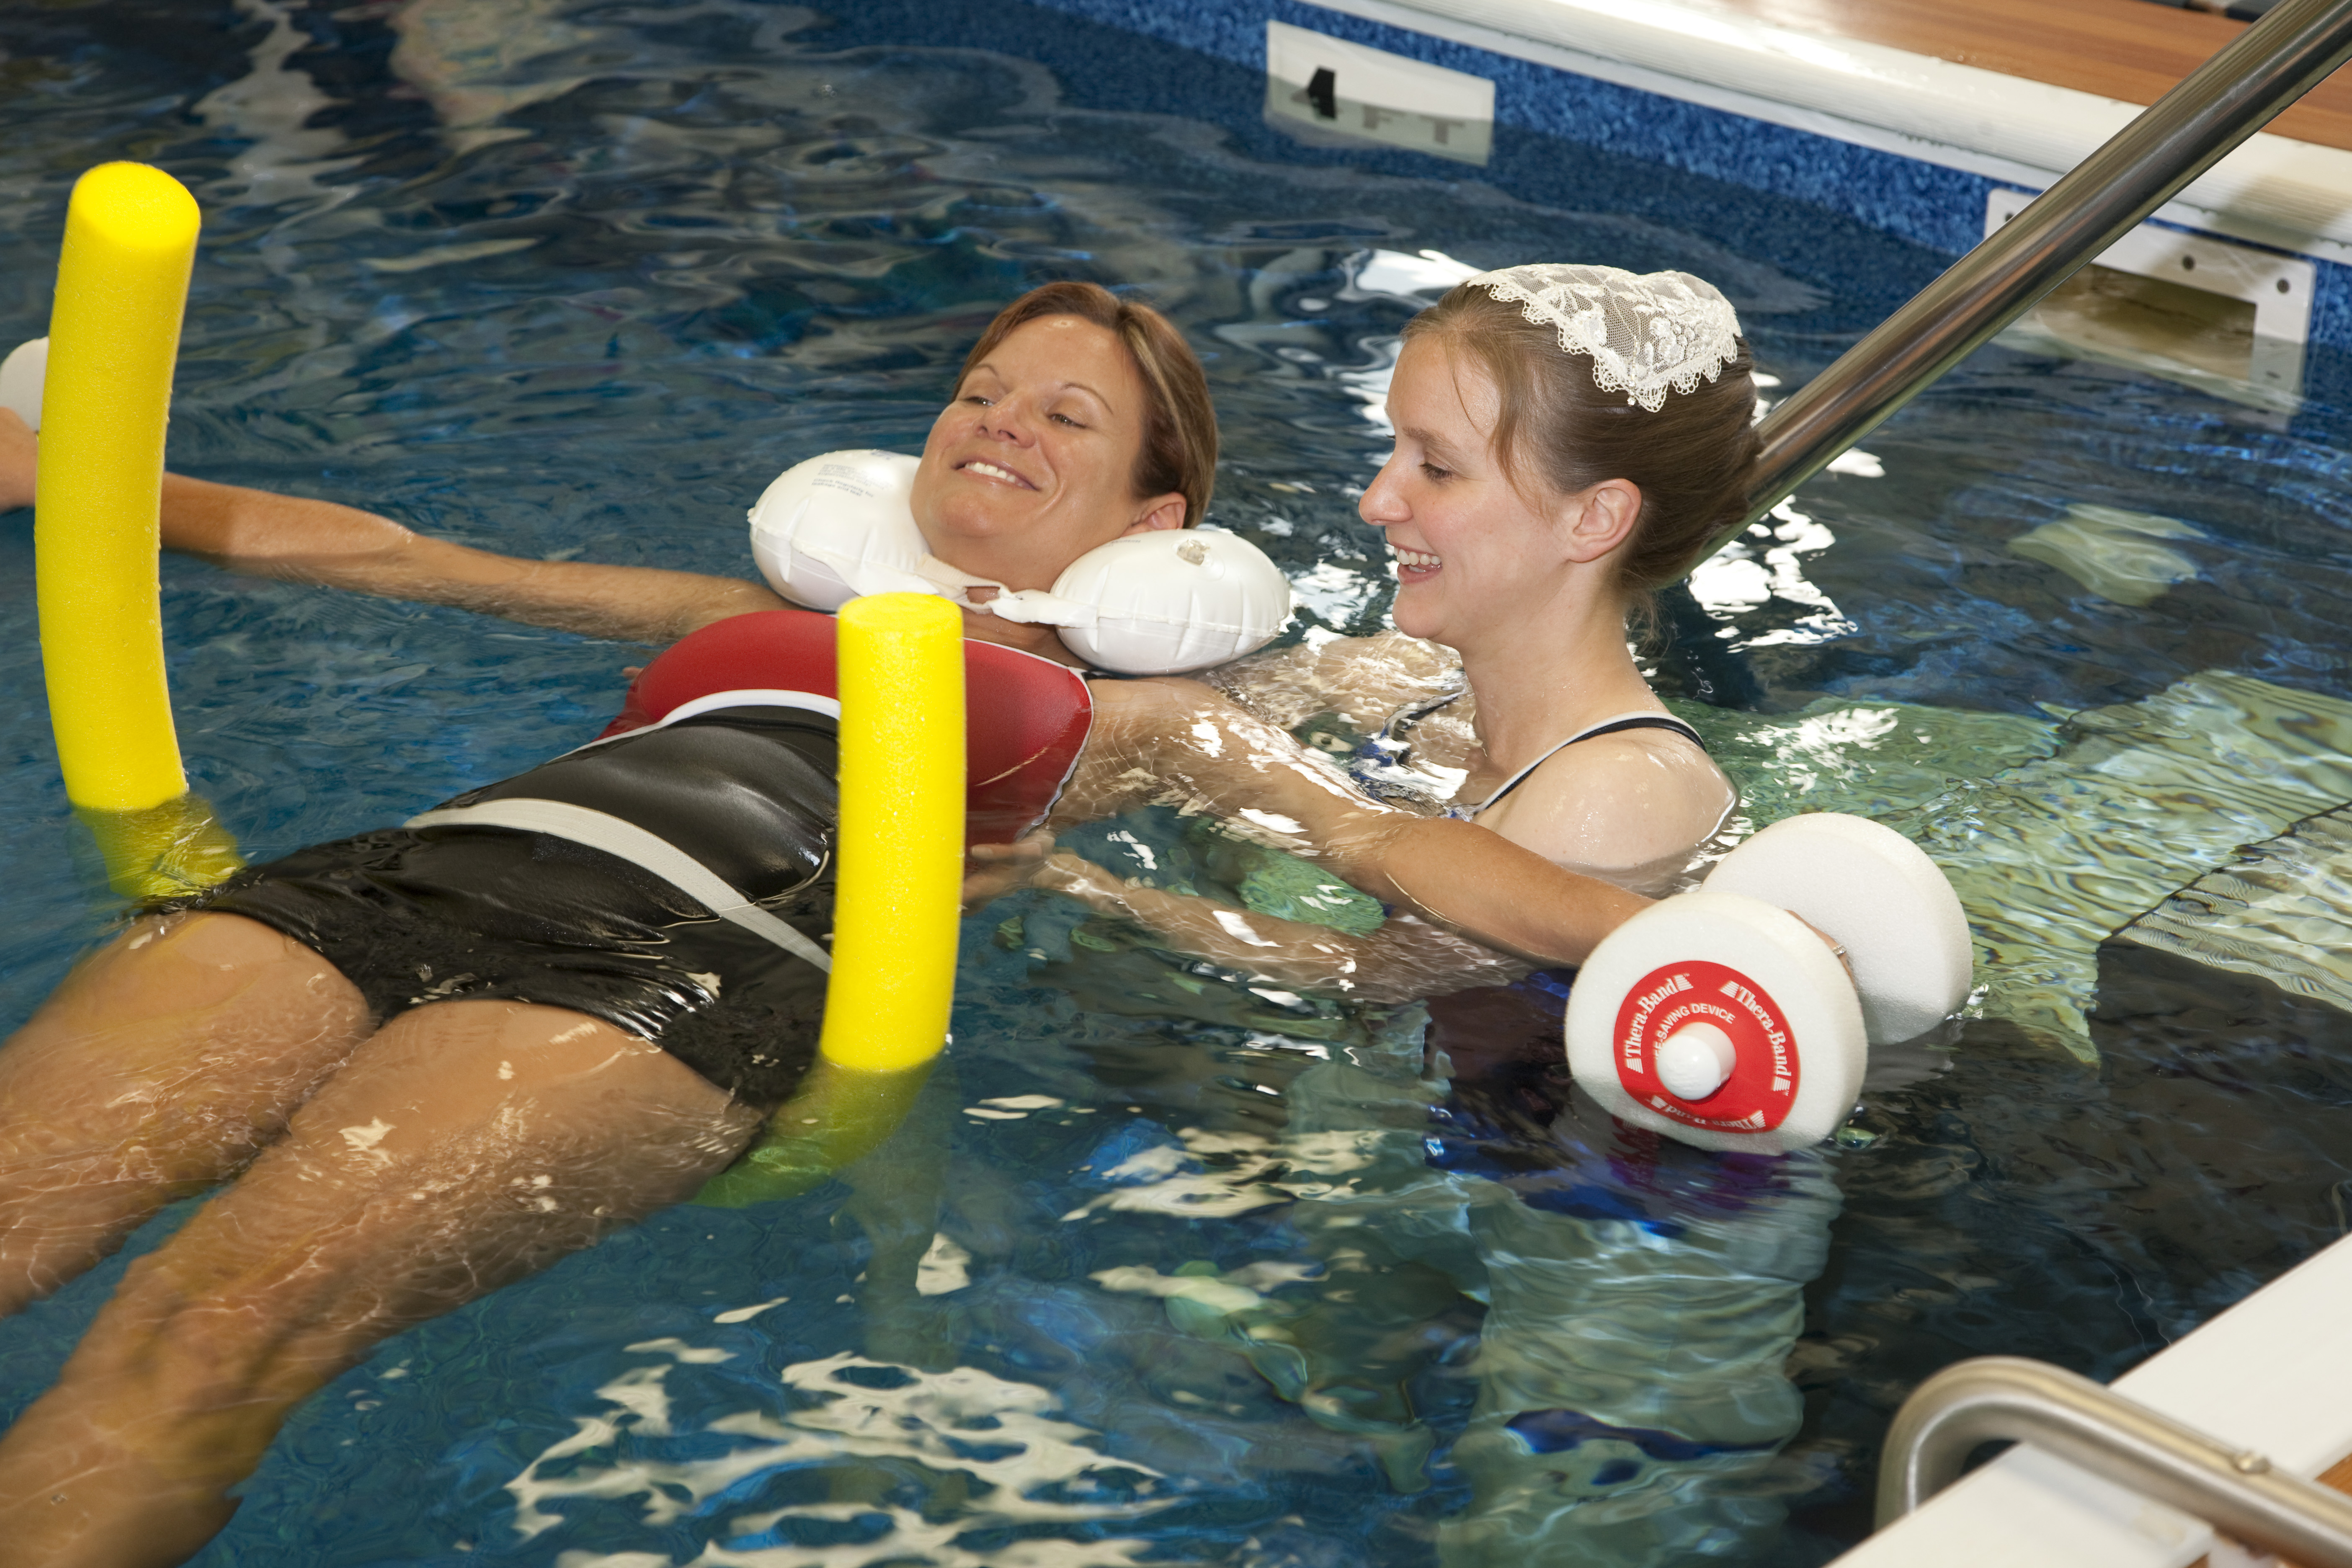 PPT-Aquatic-Therapy_05.jpg